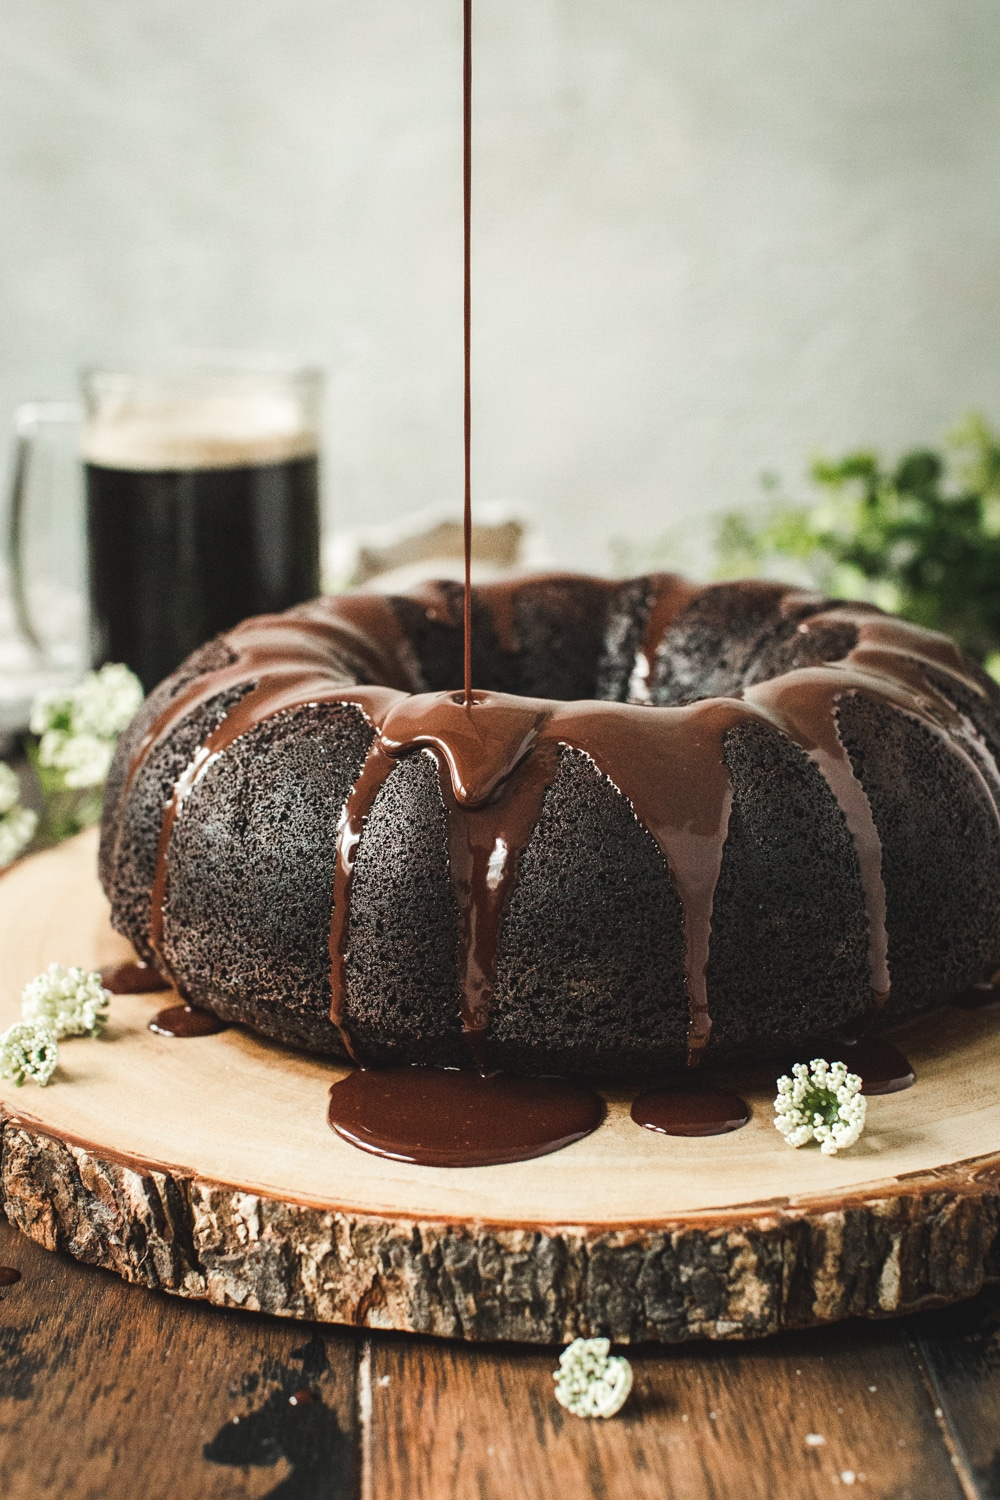 Chocolate Stout Bundt Cake with Chocolate Ganache being drizzled on top